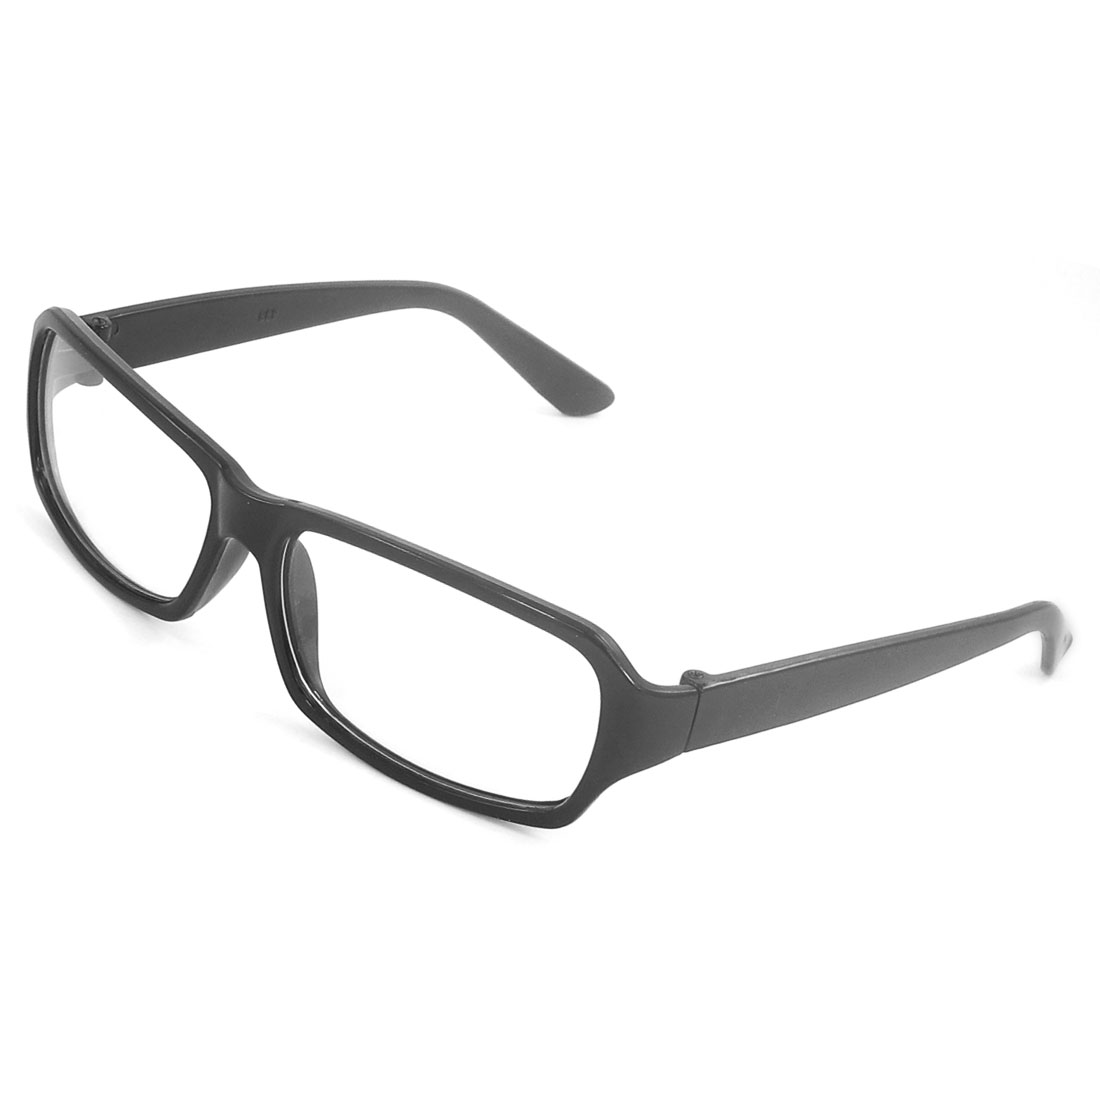 Black Plastic Full Frame Plain Eyewear Eyeglasses for Lady Men